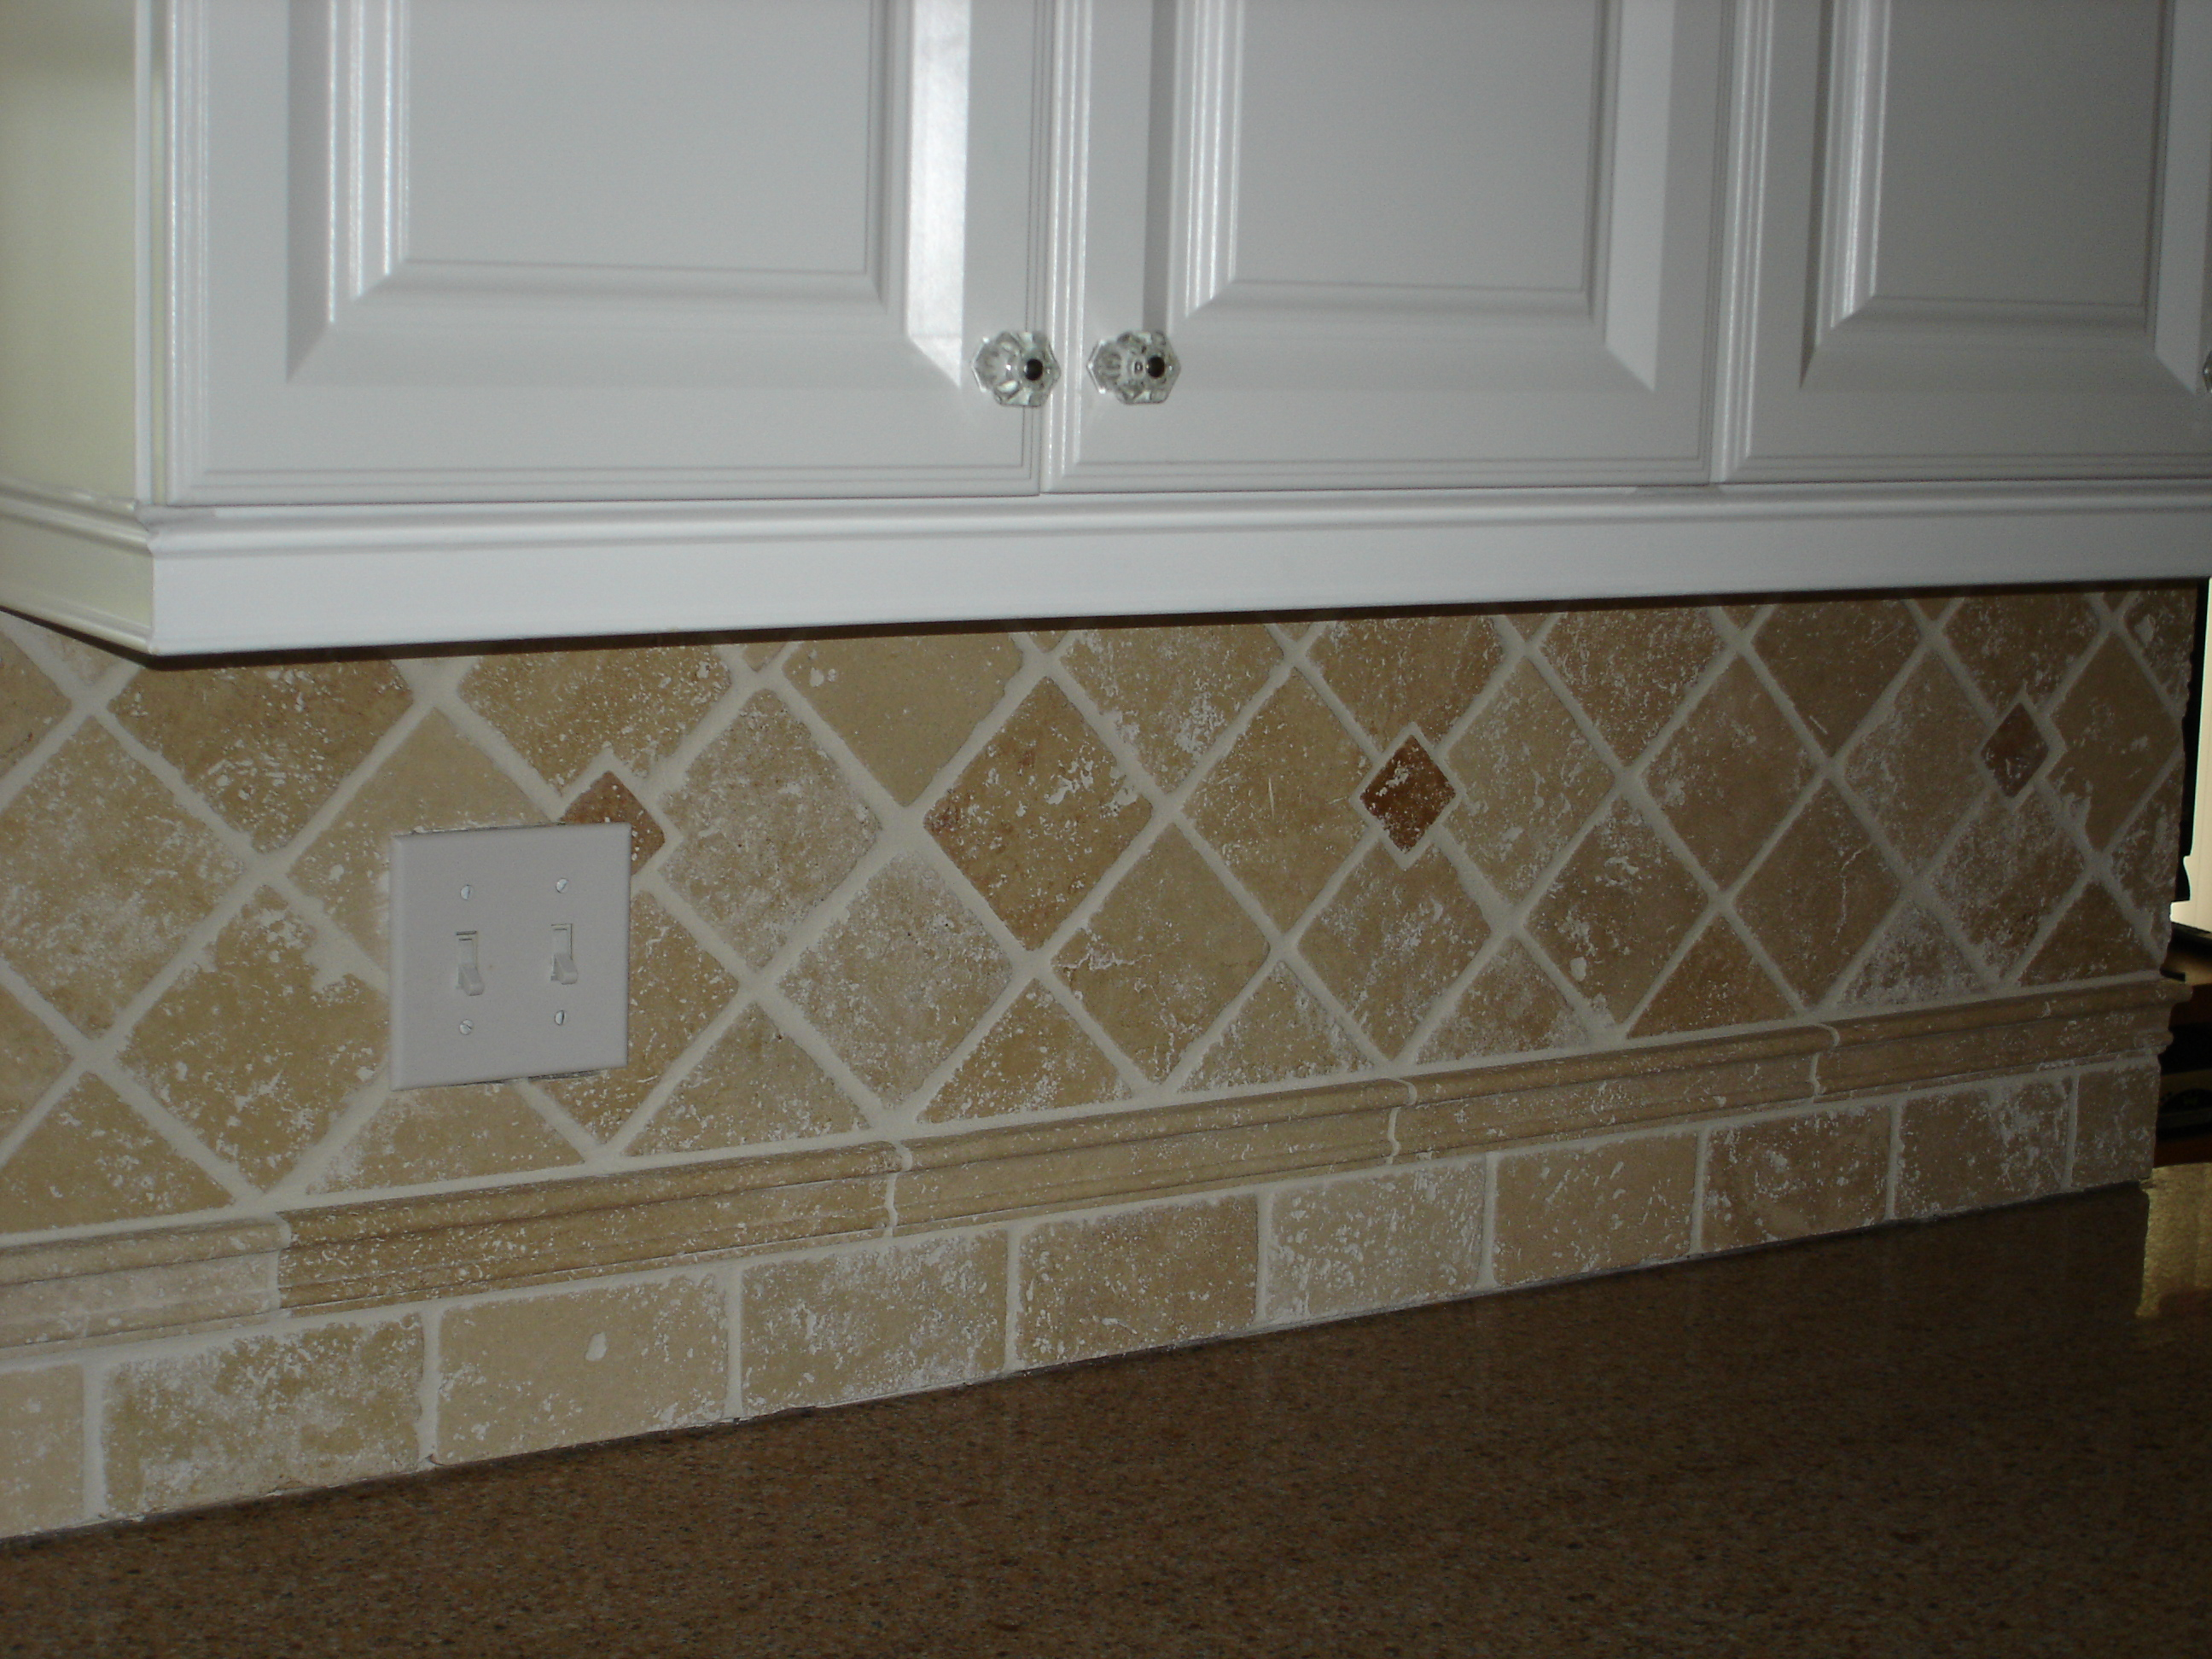 kitchen tile ideas on Tile Backsplashe Central Nj  Jackson  Freehold  Colts Neck  Brick